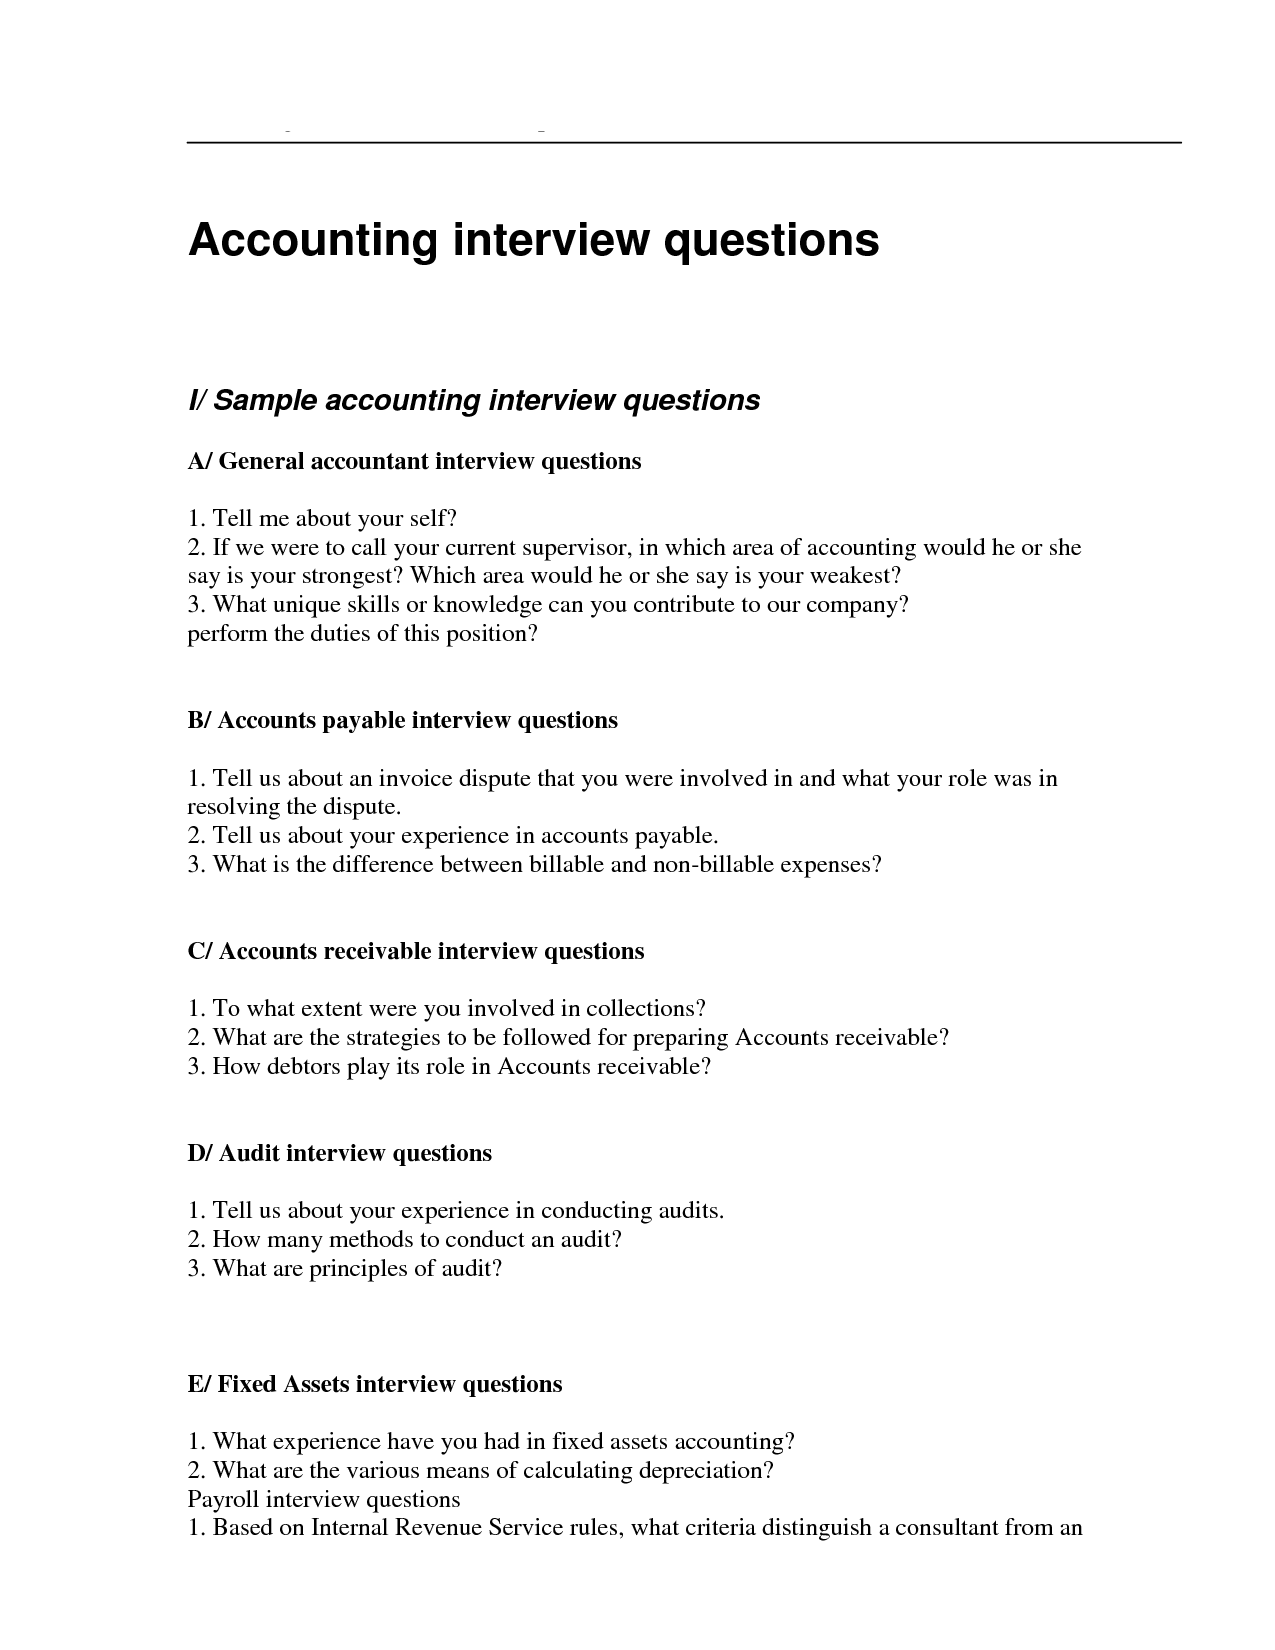 Mutual Fund Accountant Cover Letter Interview Questions For Accounting Position Tacu Sotechco Co